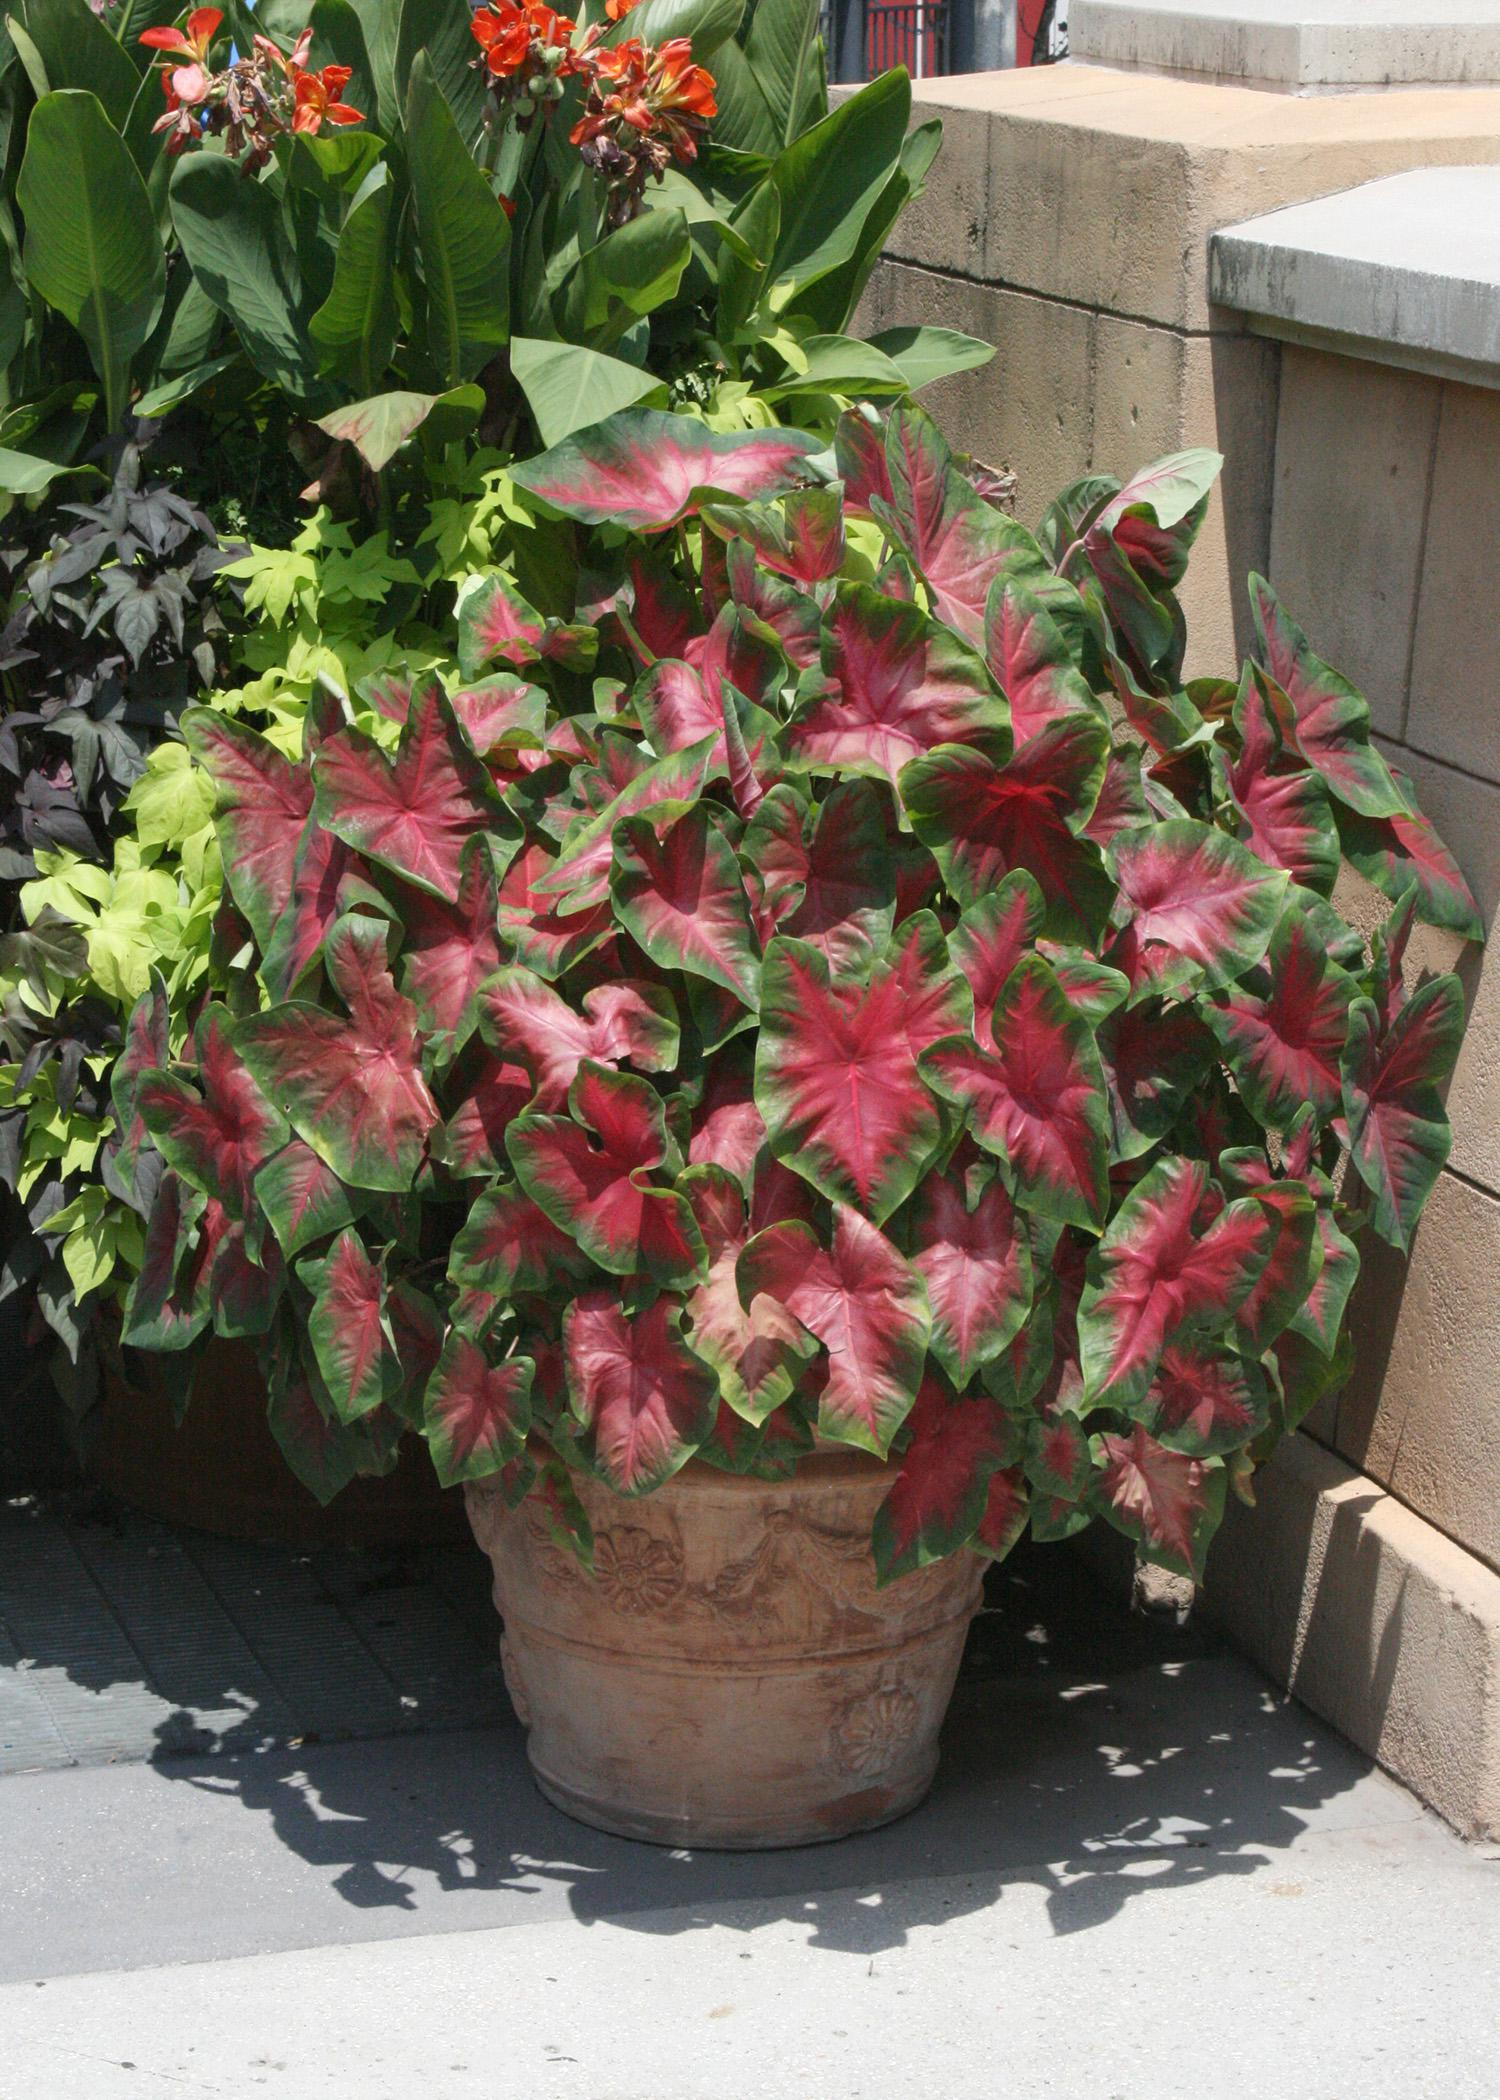 Caladiums are very versatile and tolerant of many growing styles, including these growing in a container in a sunny location. (Photo by MSU Extension Service/Gary Bachman)